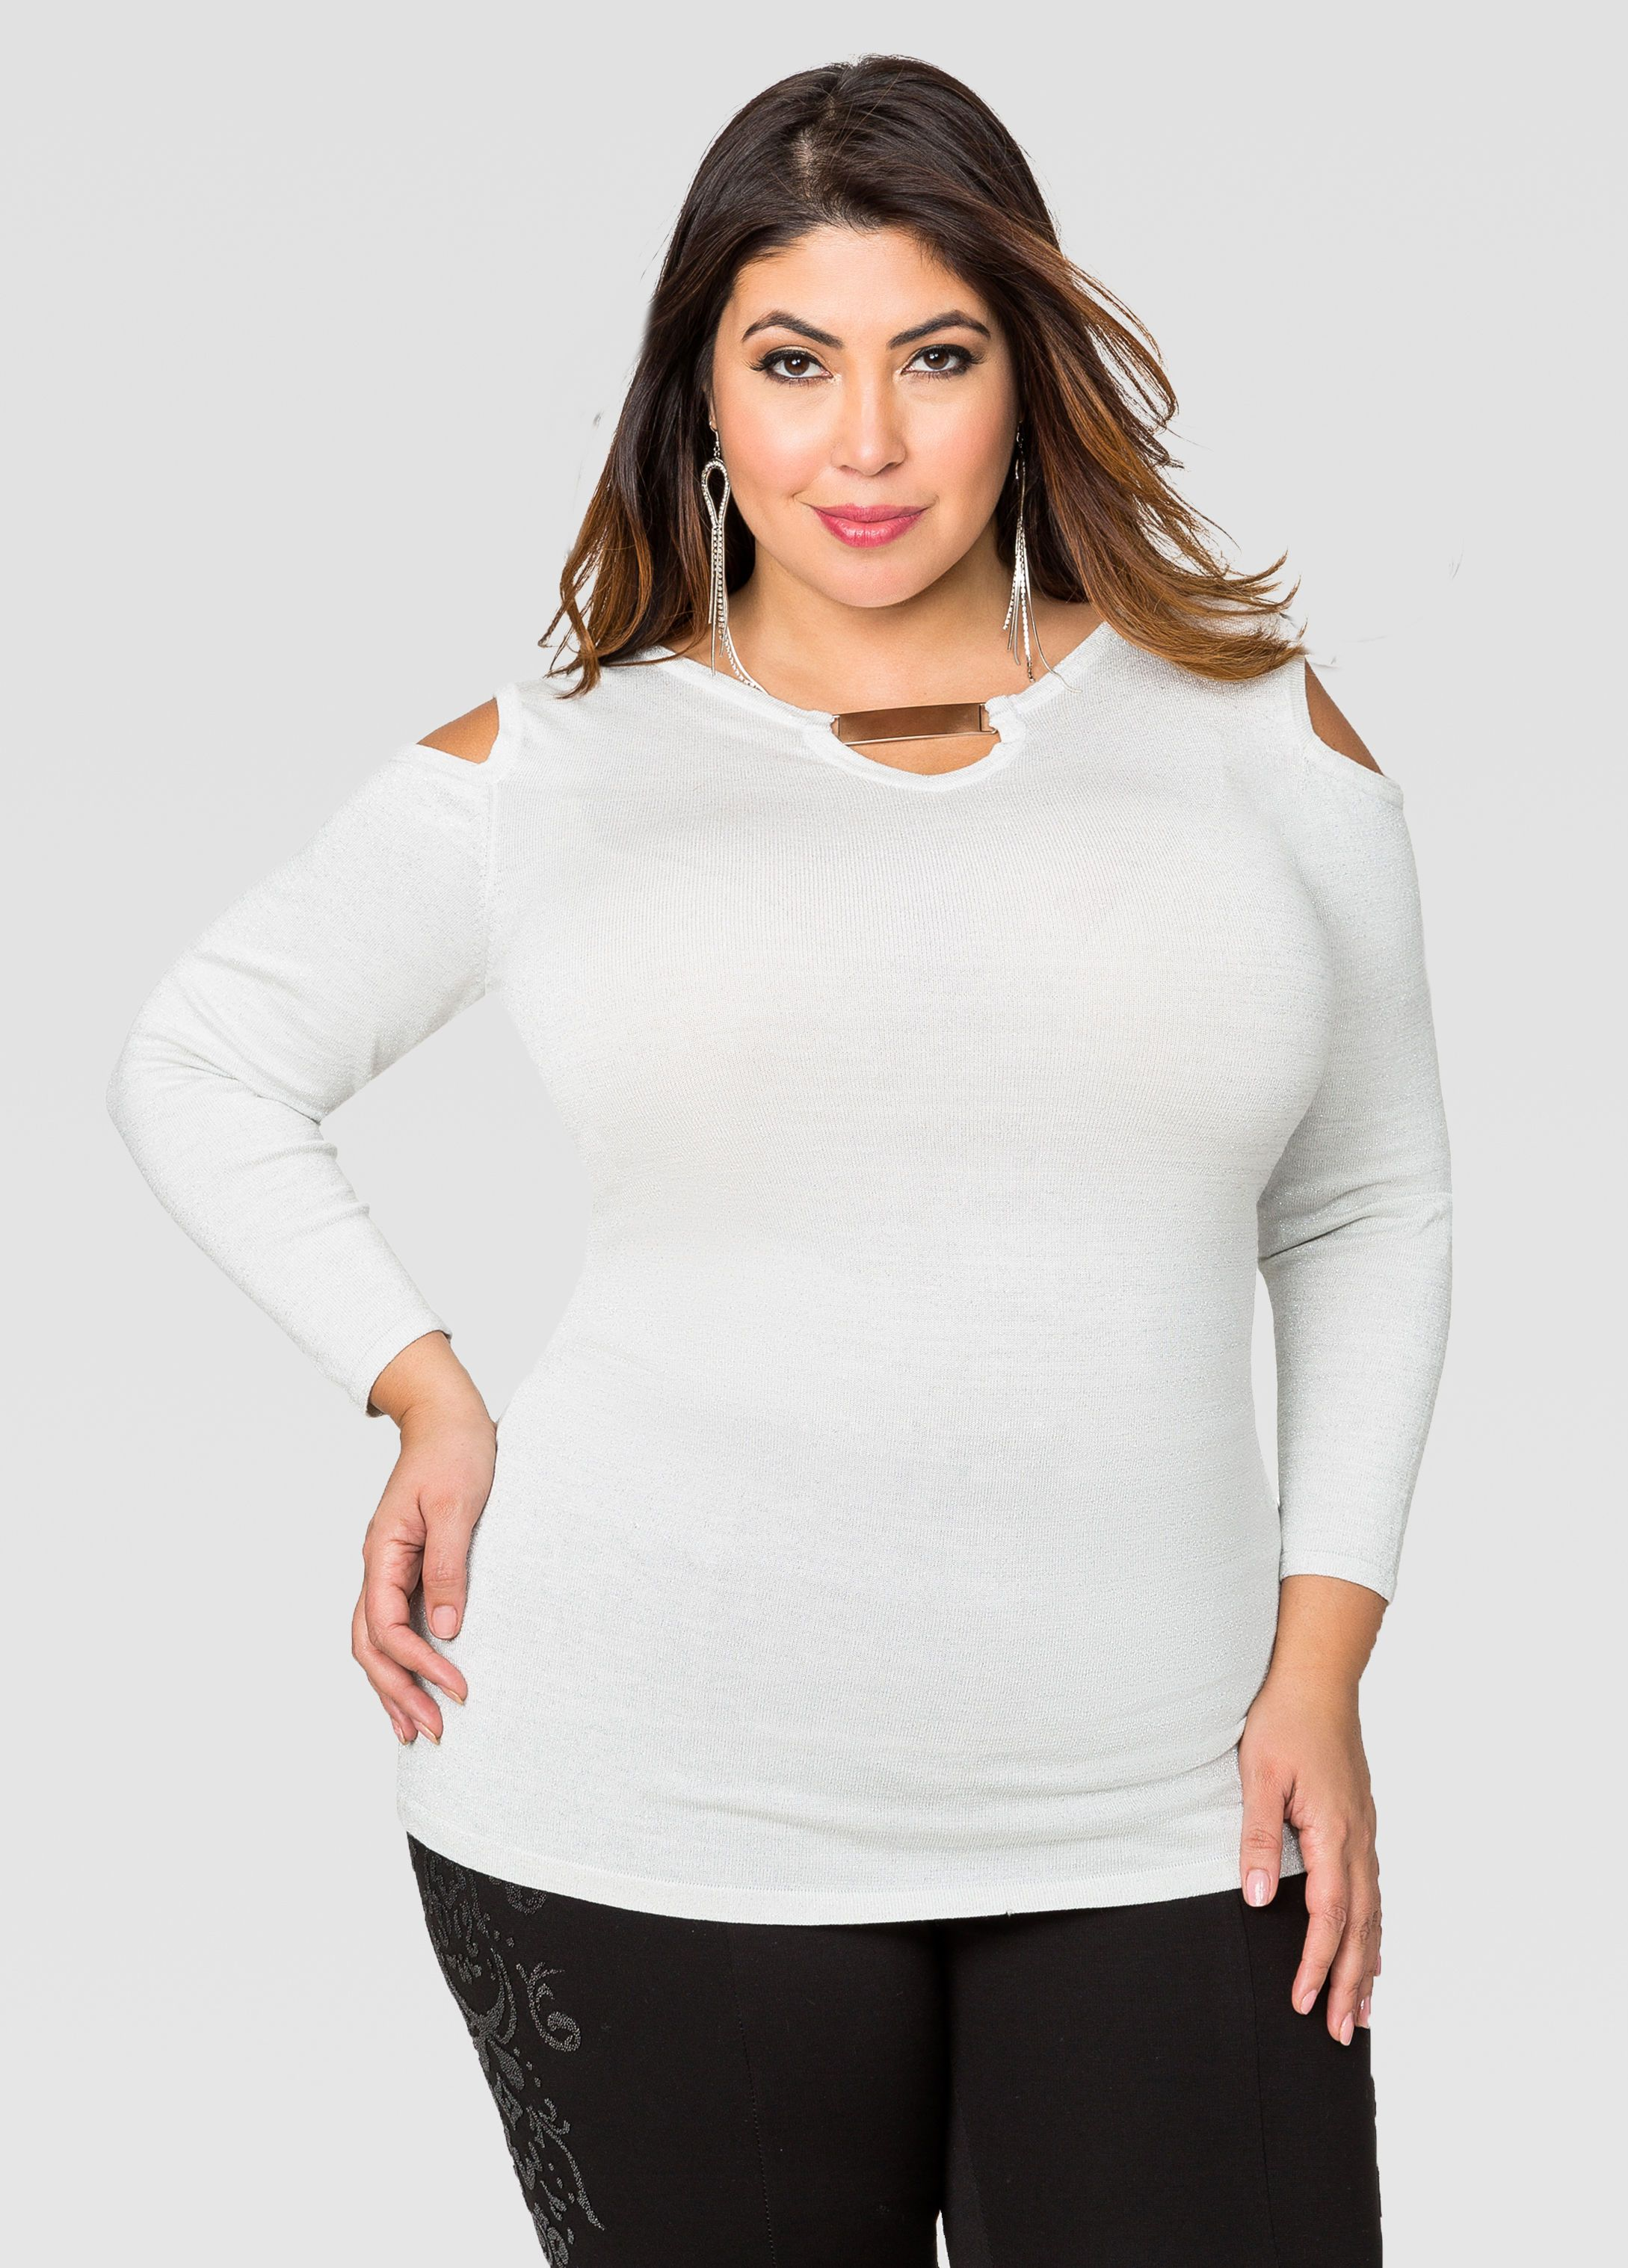 Gold Bar Cold Shoulder Tunic Sweater - Ashley Stewart | Jessica ...